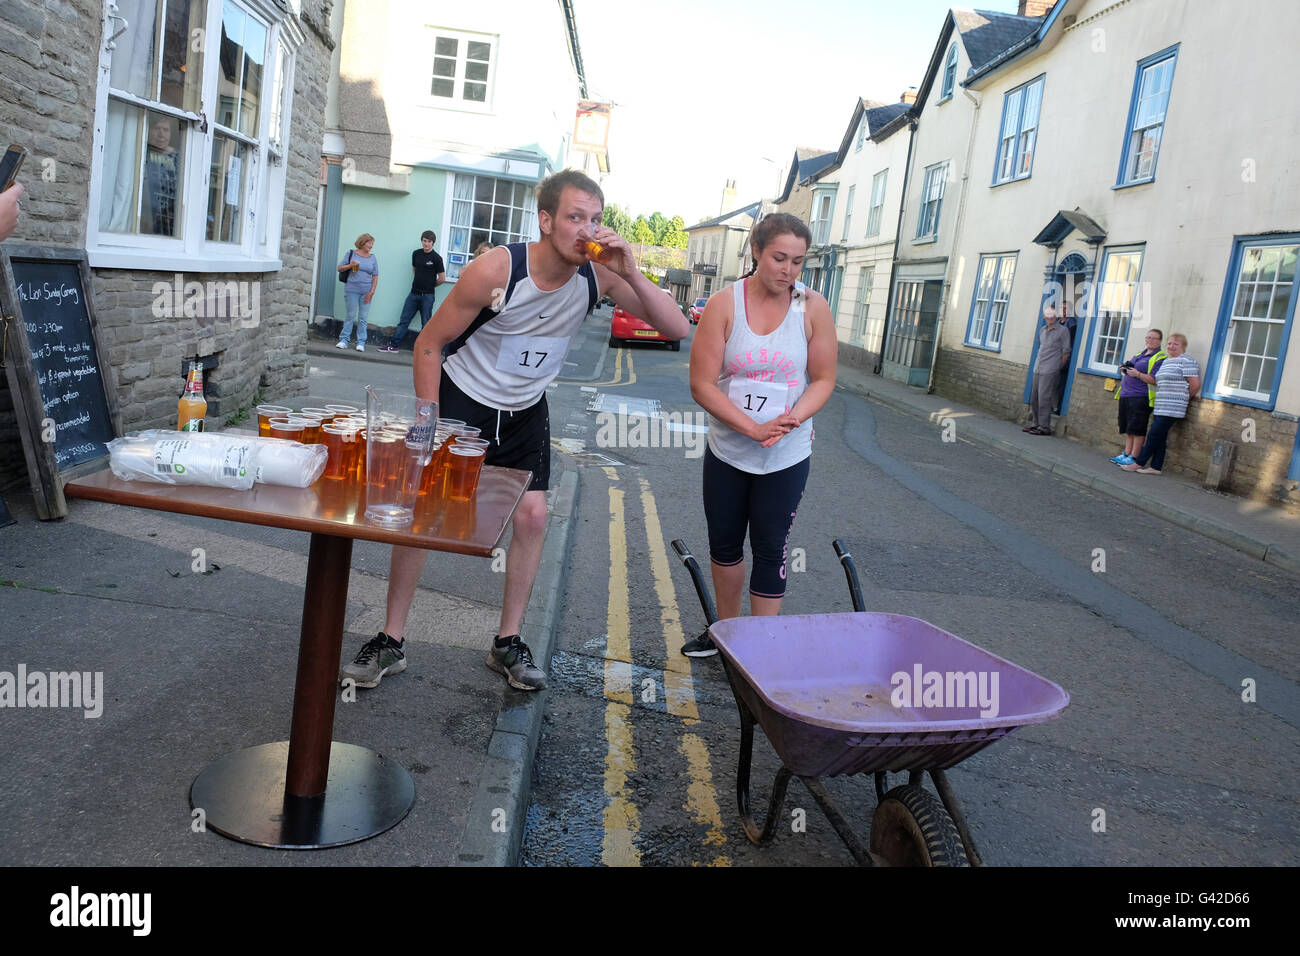 Kington, Herefordshire, UK - Saturday 18th June 2016 - A man and woman team stop for the next beer as they take - Stock Image